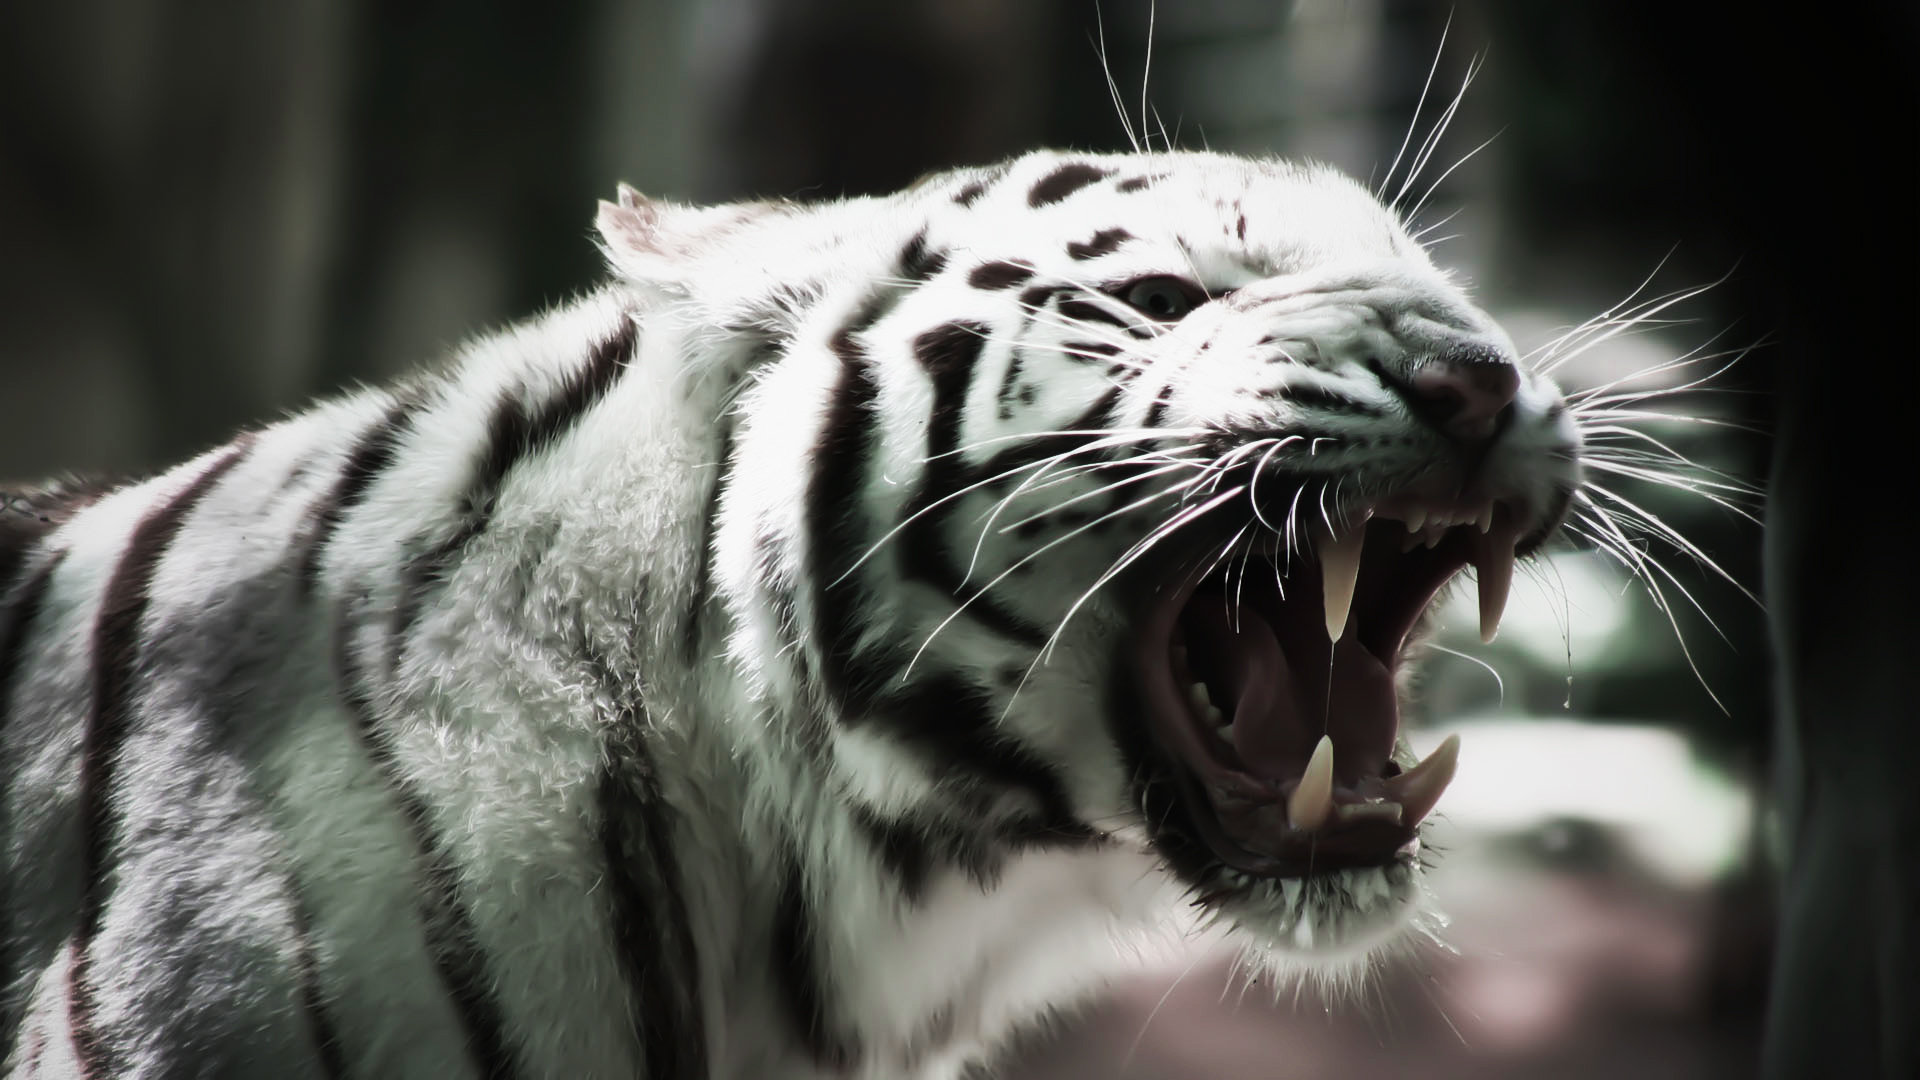 Download full hd 1920x1080 White Tiger computer wallpaper ID:174932 for free